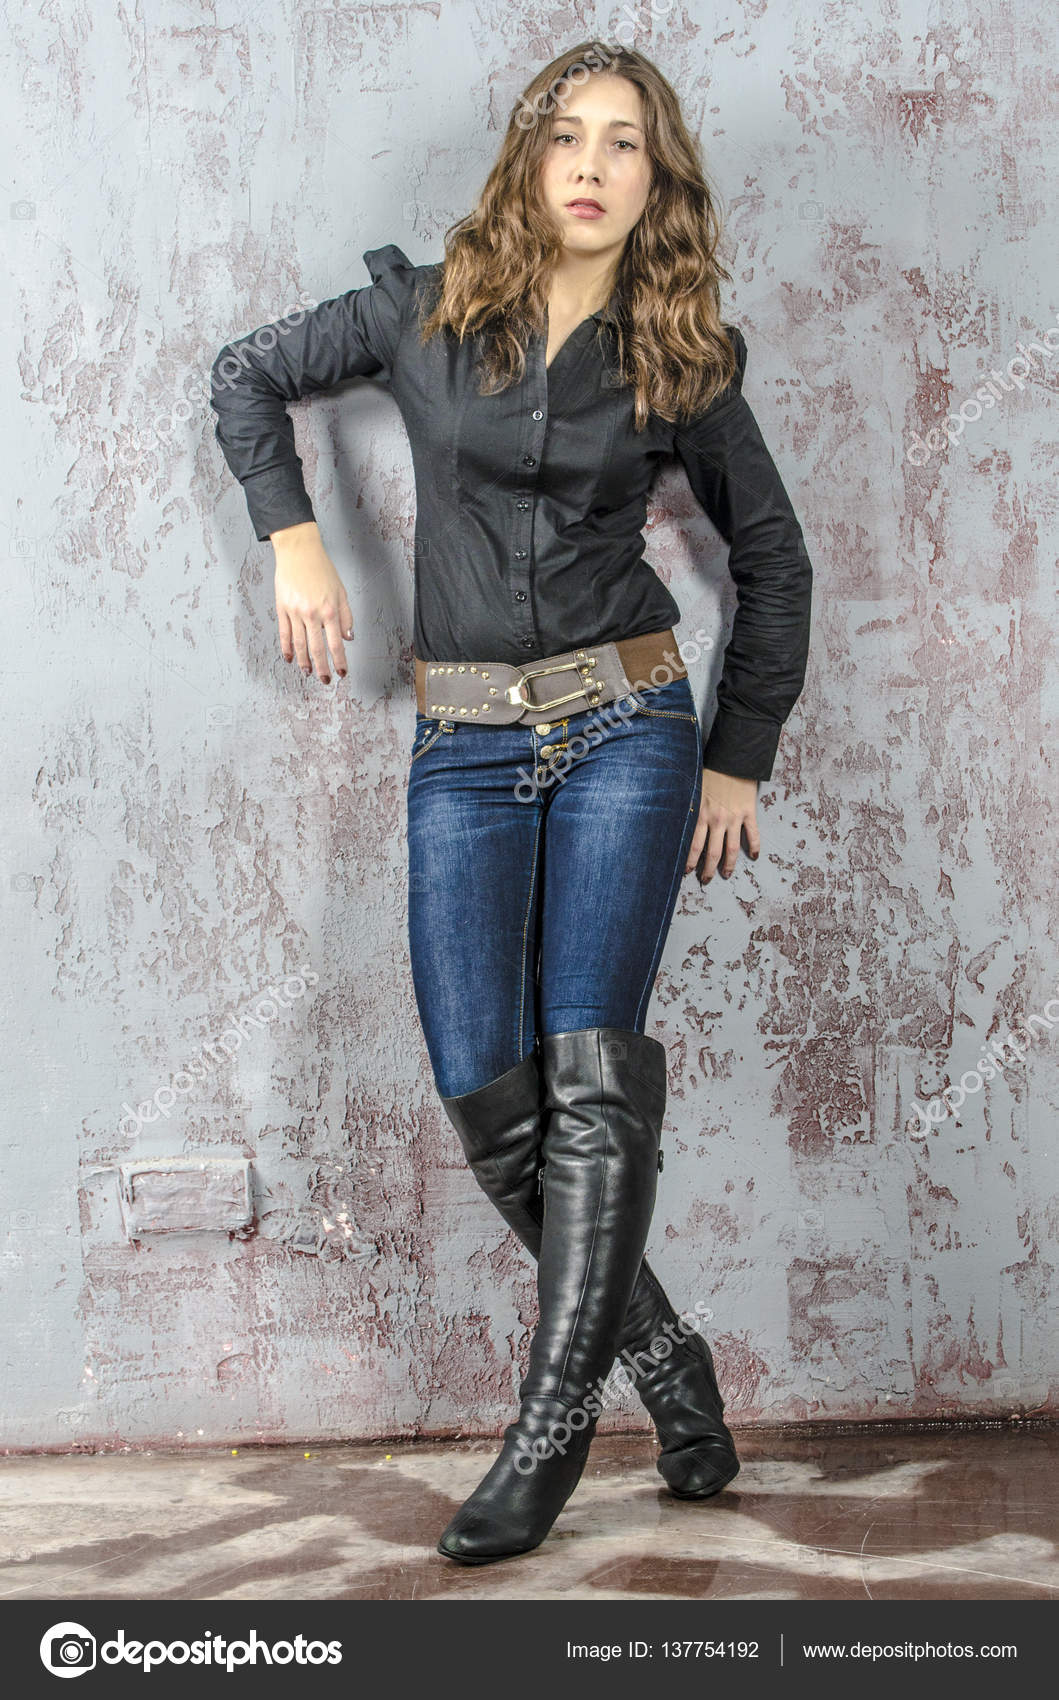 young with curly hair in a black shirt jeans and high boots